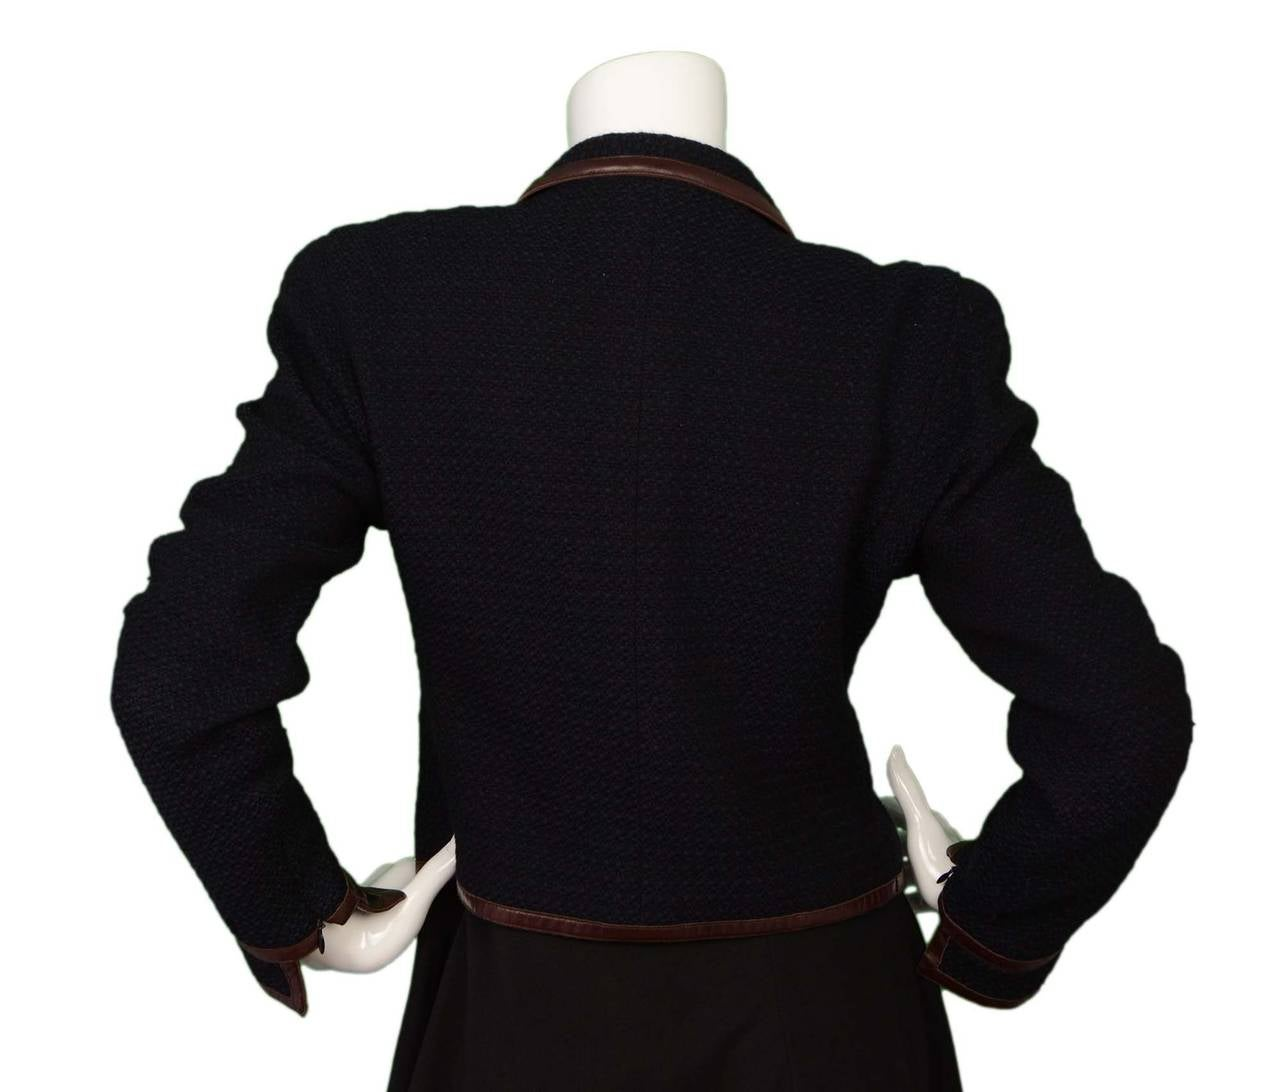 CHANEL Navy & Black Wool Tweed Jacket w/Brown Leather Trim sz 38 3